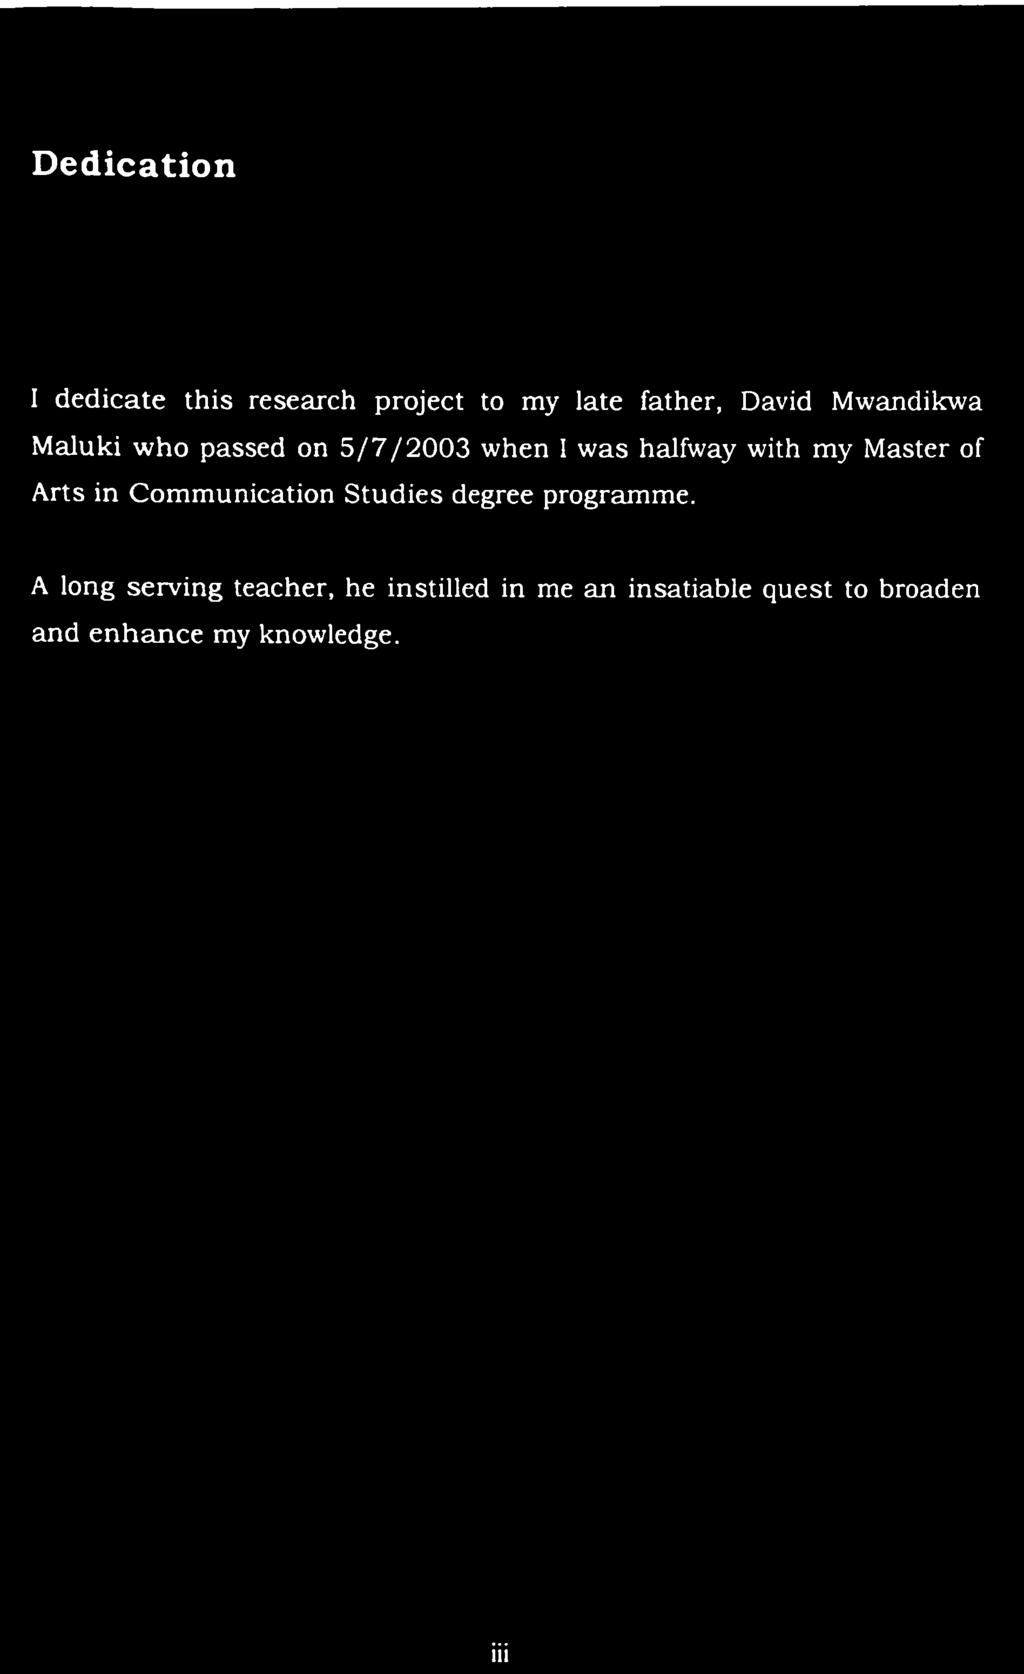 Dedication I dedicate this research project to my late father, David Mwandikwa Maluki who passed on 5/7/2003 when I was halfway with my Master of